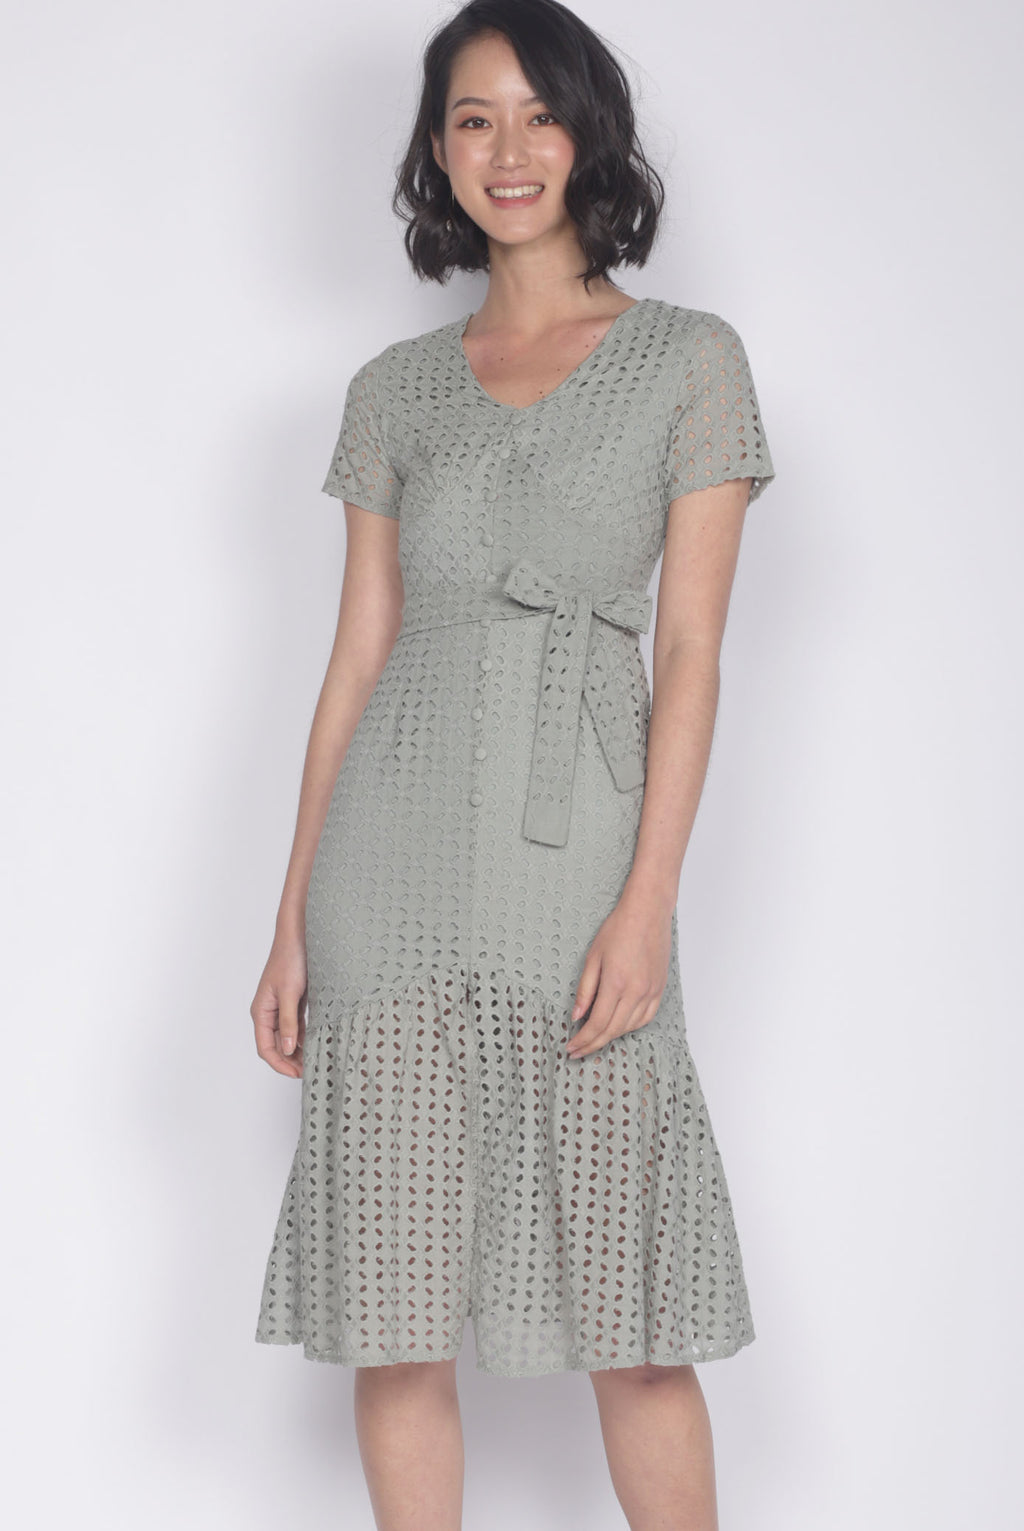 Darletta Eyelet Buttons Dress In Sage